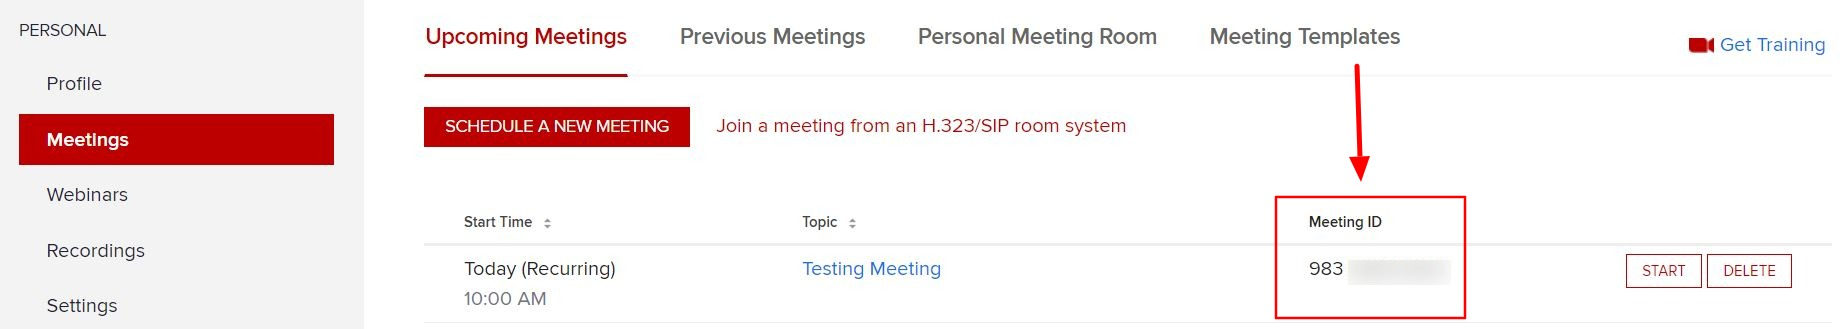 Meeting ID column located on right side of screen under the Upcoming Meetings tab